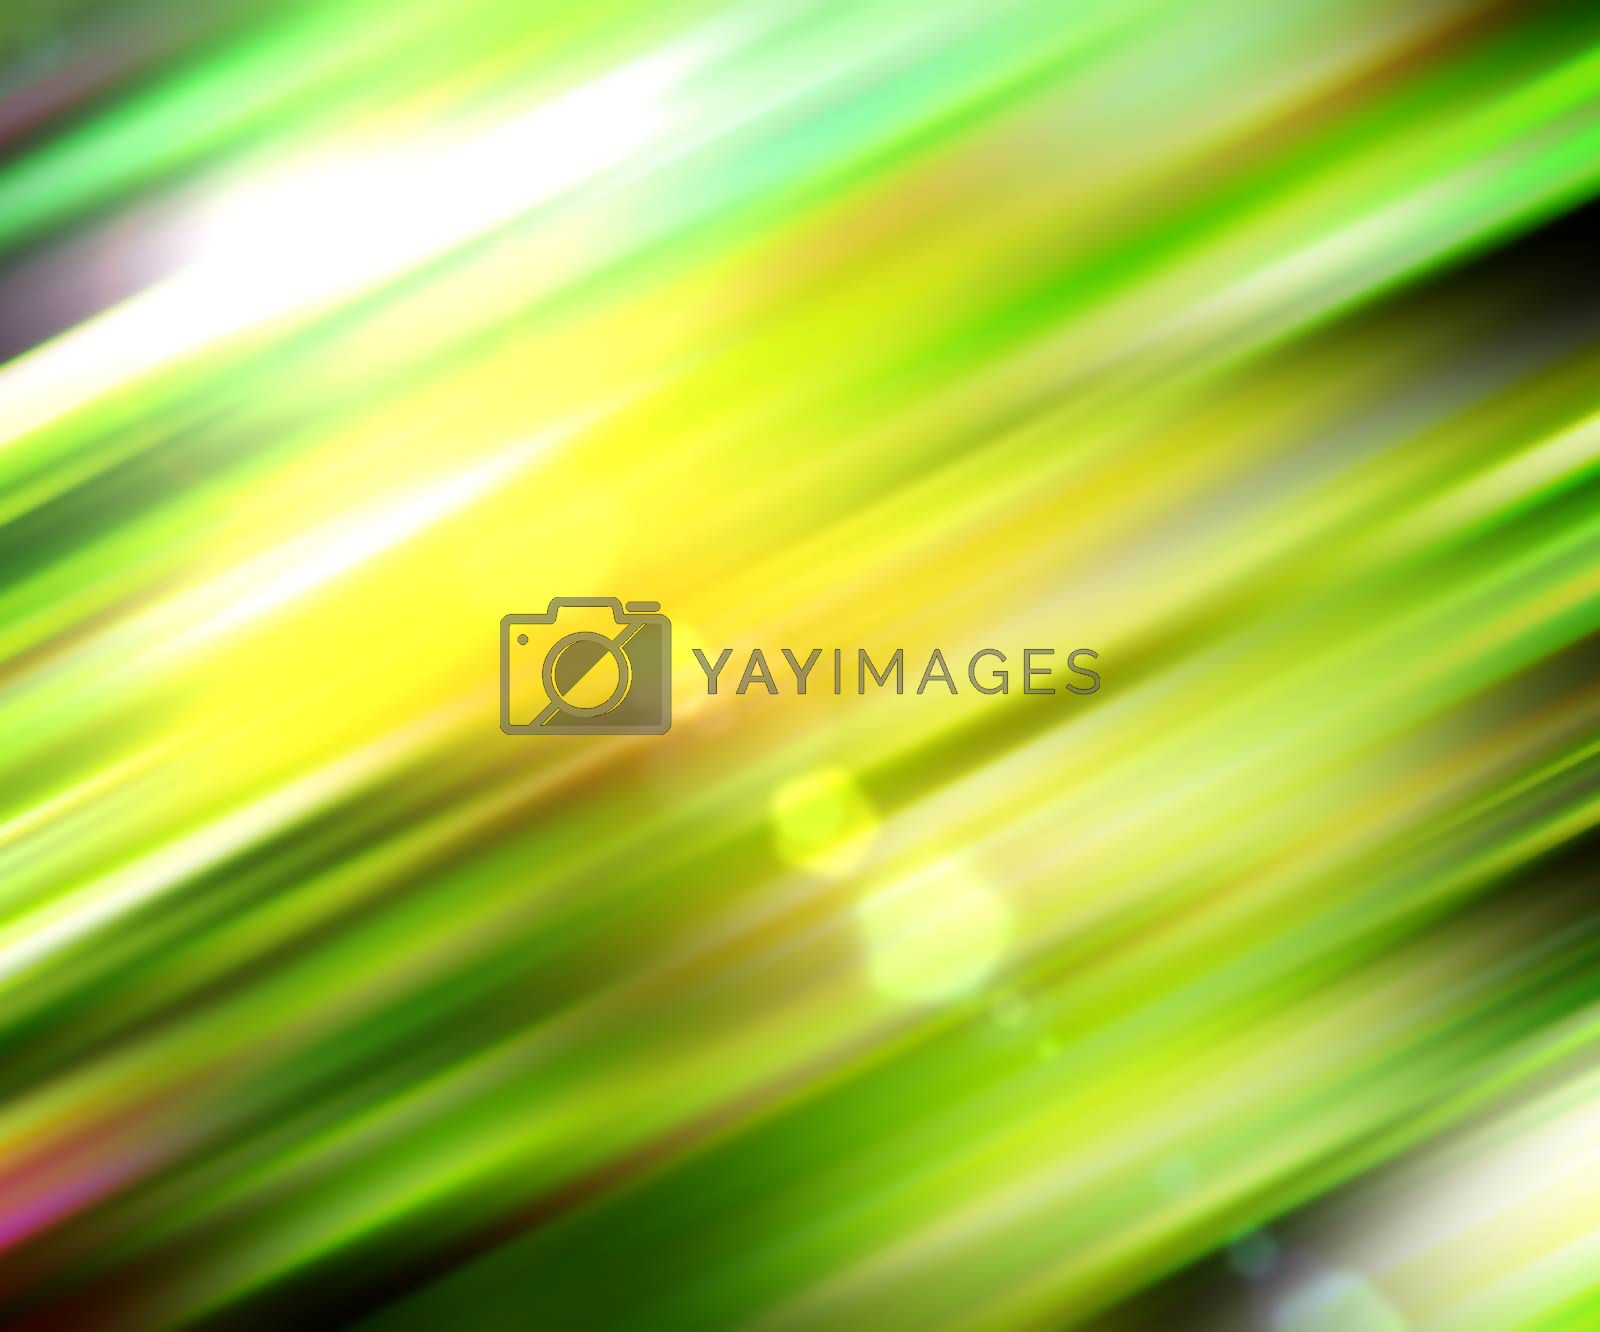 Abstract cool background with good details and high resolution